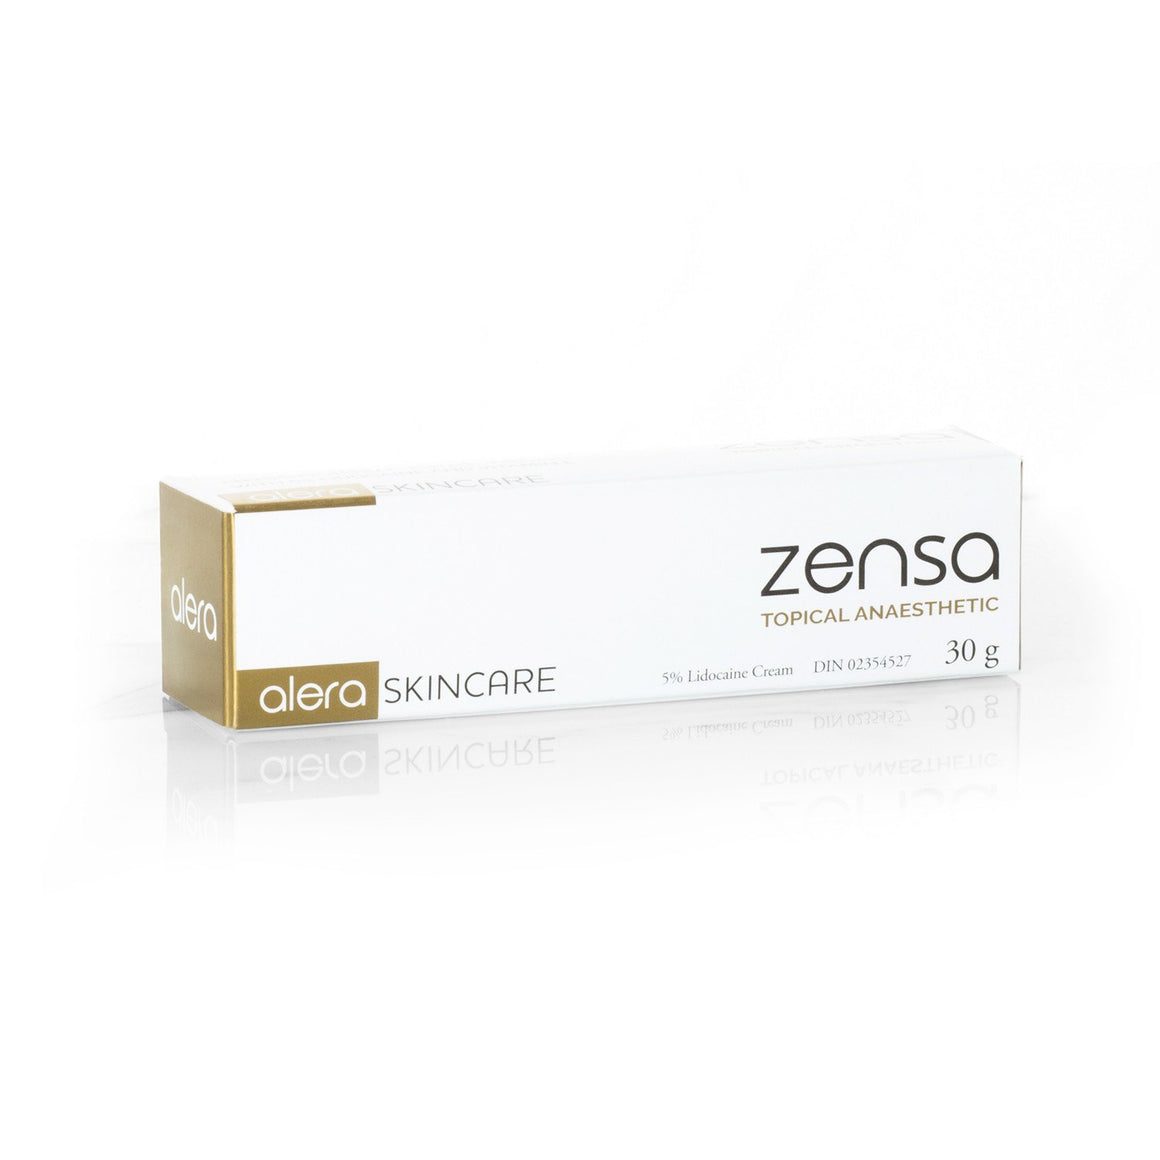 Zensa Topical Anaesthetic